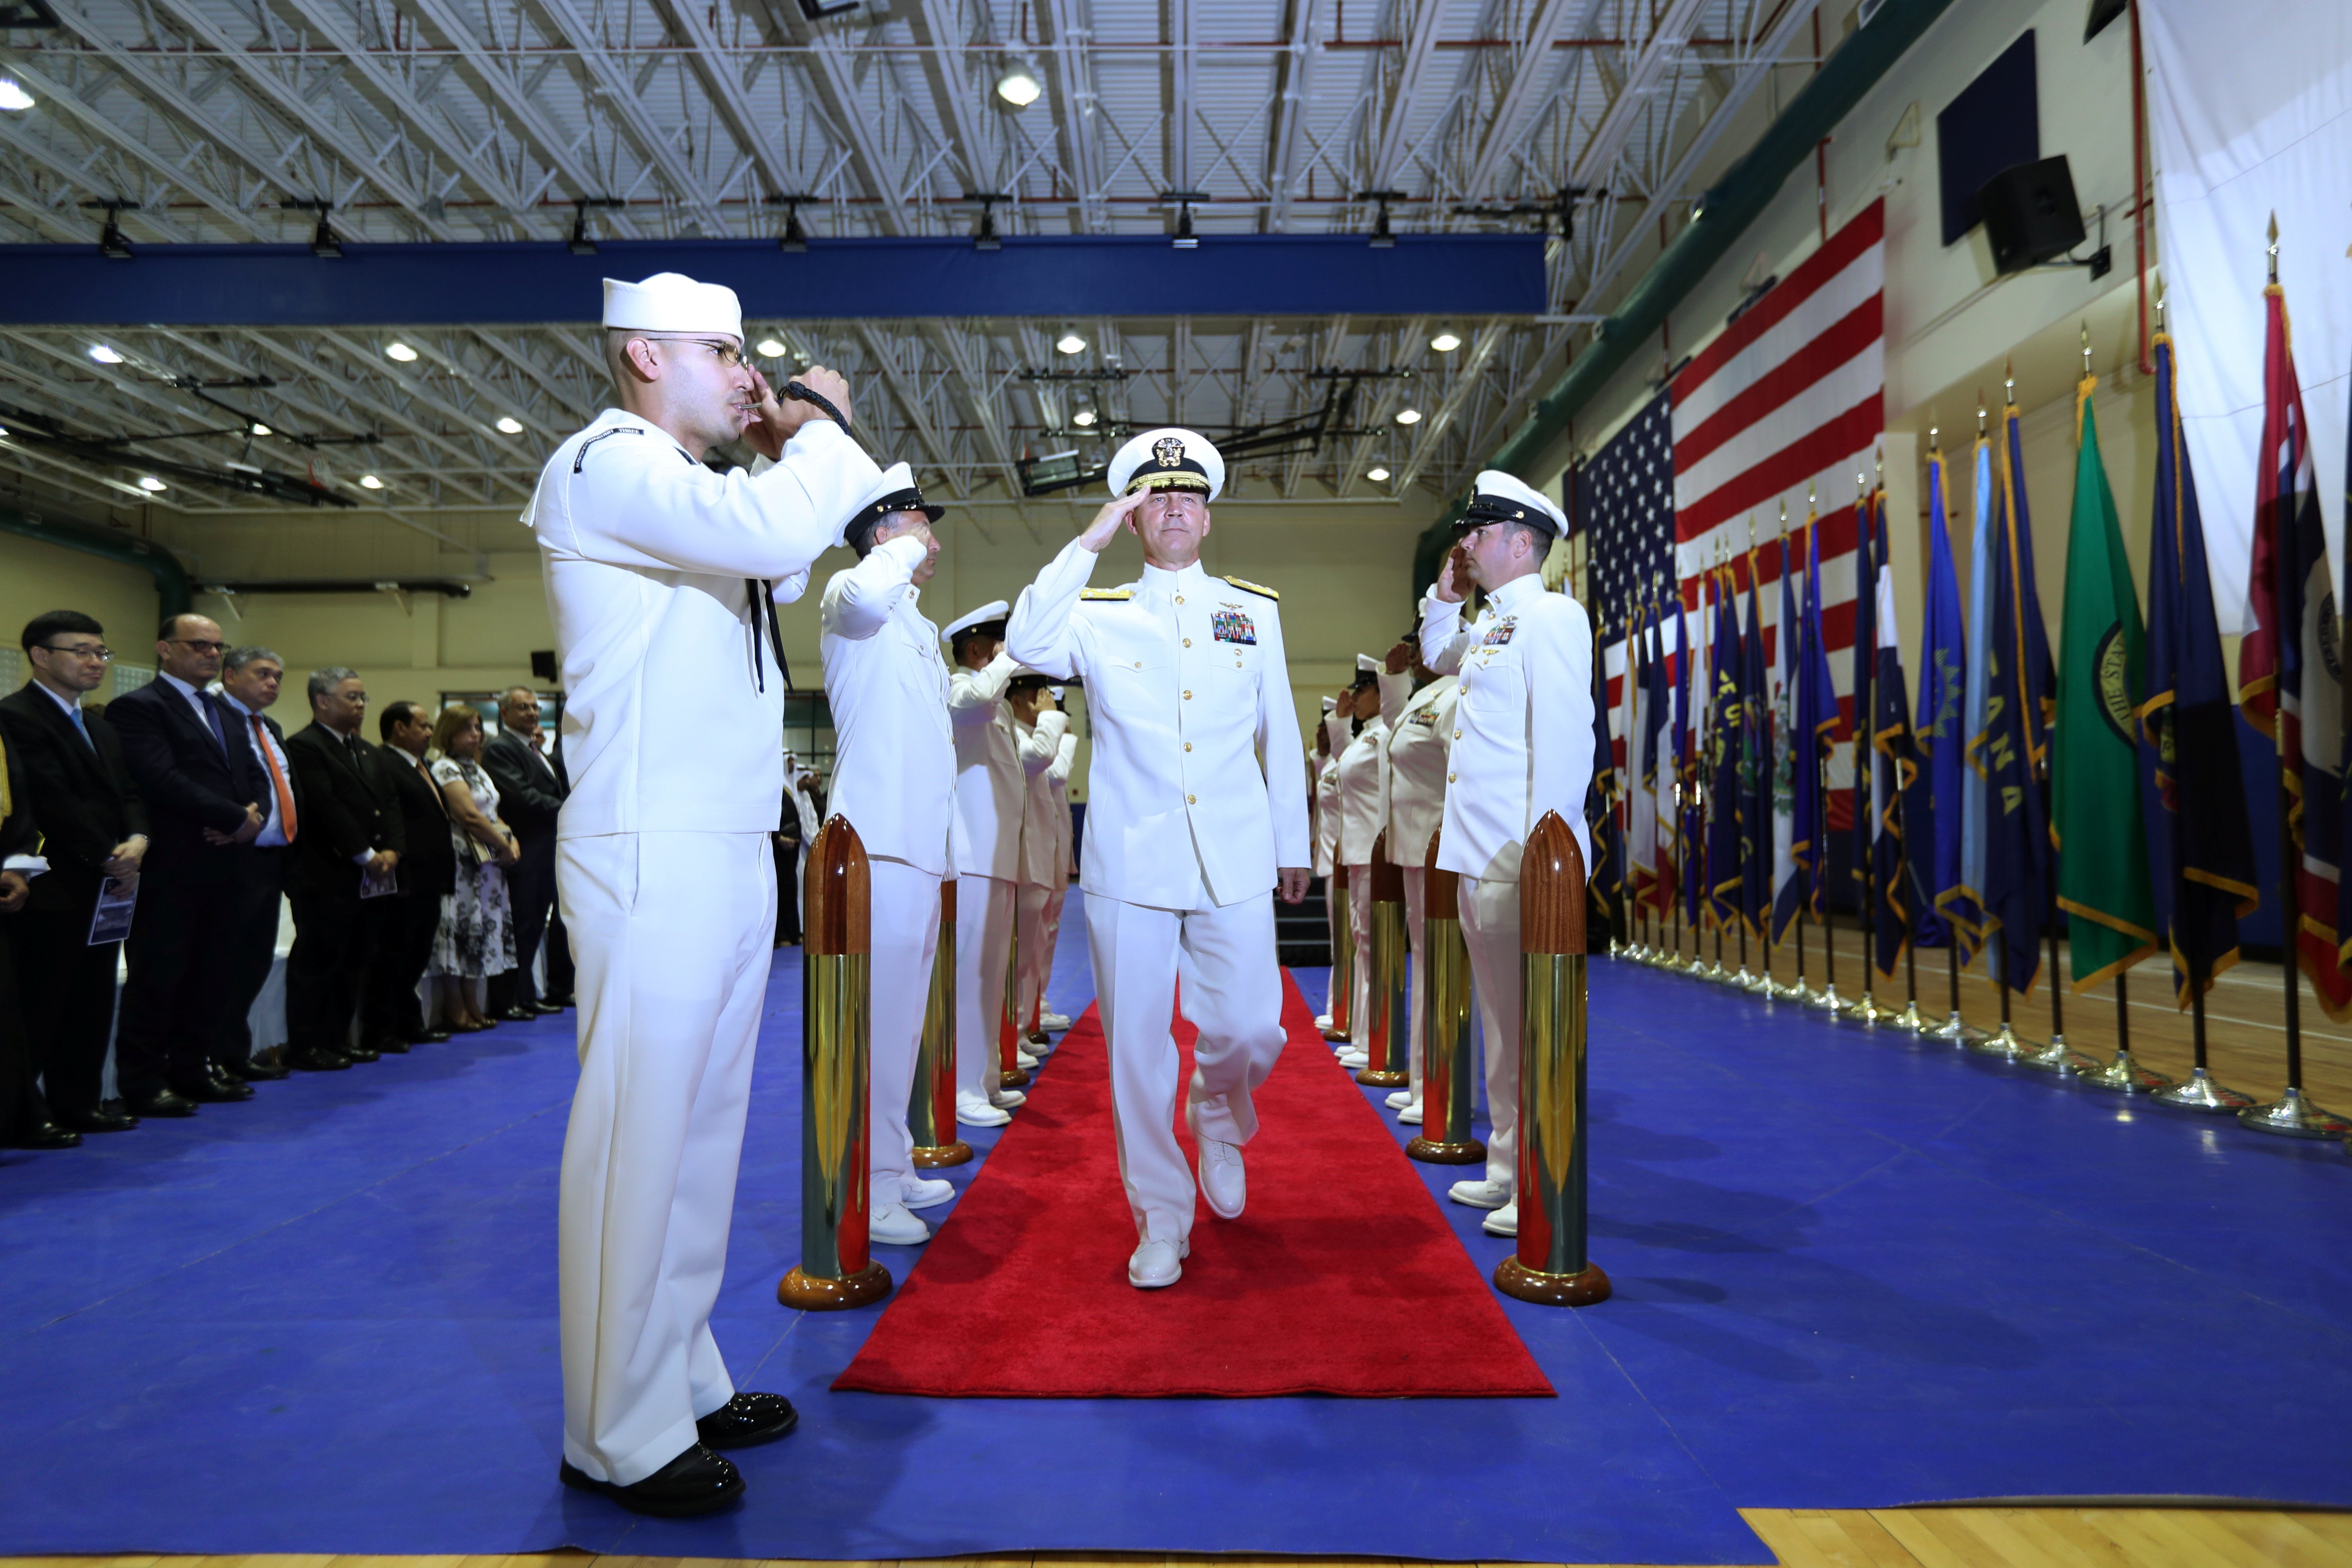 U.S. Navy vice admiral Scott A. Stearney, Commander of 5th Fleet and head of Naval Forces Central Command is welcomed during the Change of Command U.S. Naval Forces Central Command 5th Fleet Combined Maritime Forces ceremony at the U.S. Naval Base in Bahrain, May 6, 2018. REUTERS/Hamad I Mohammed